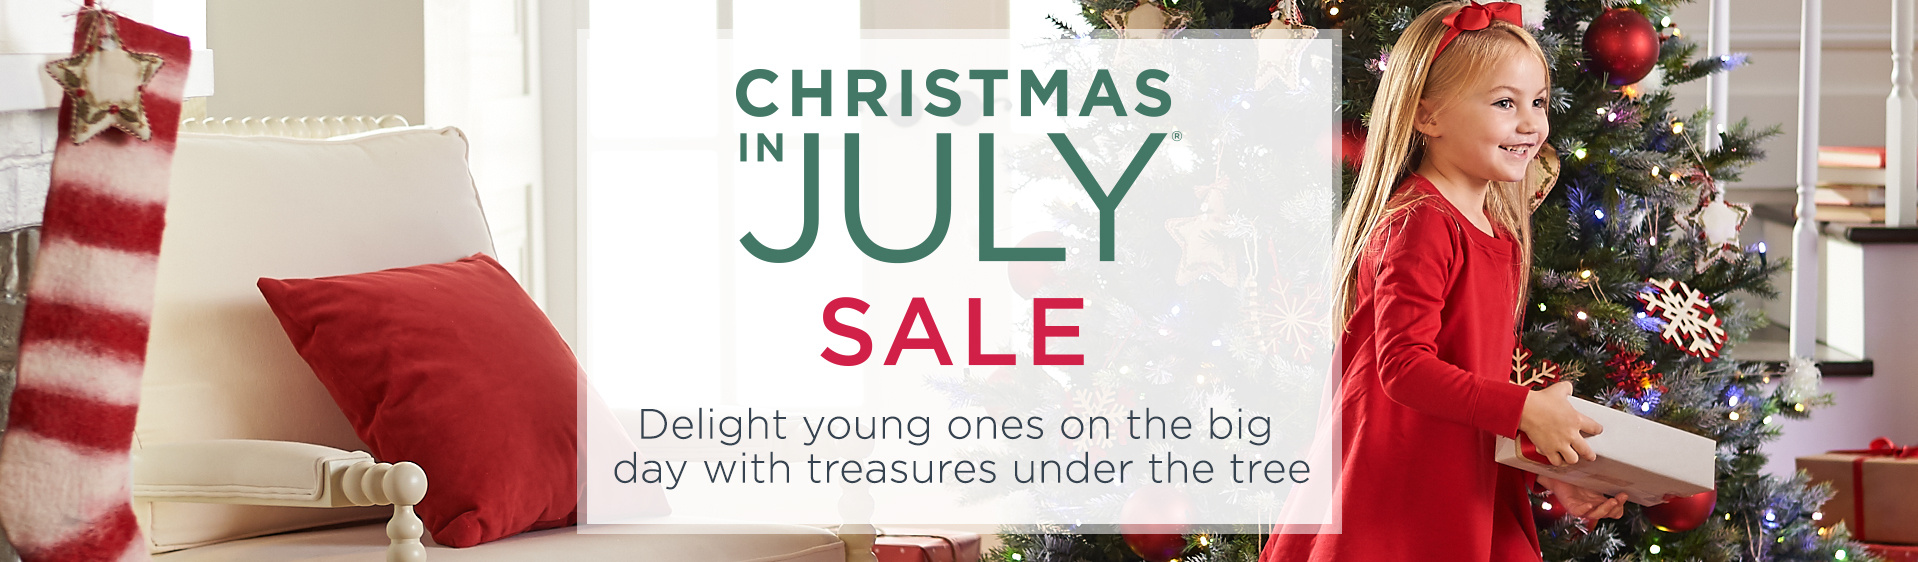 Christmas in July® Sale. Delight young ones on the big day with treasures under the tree